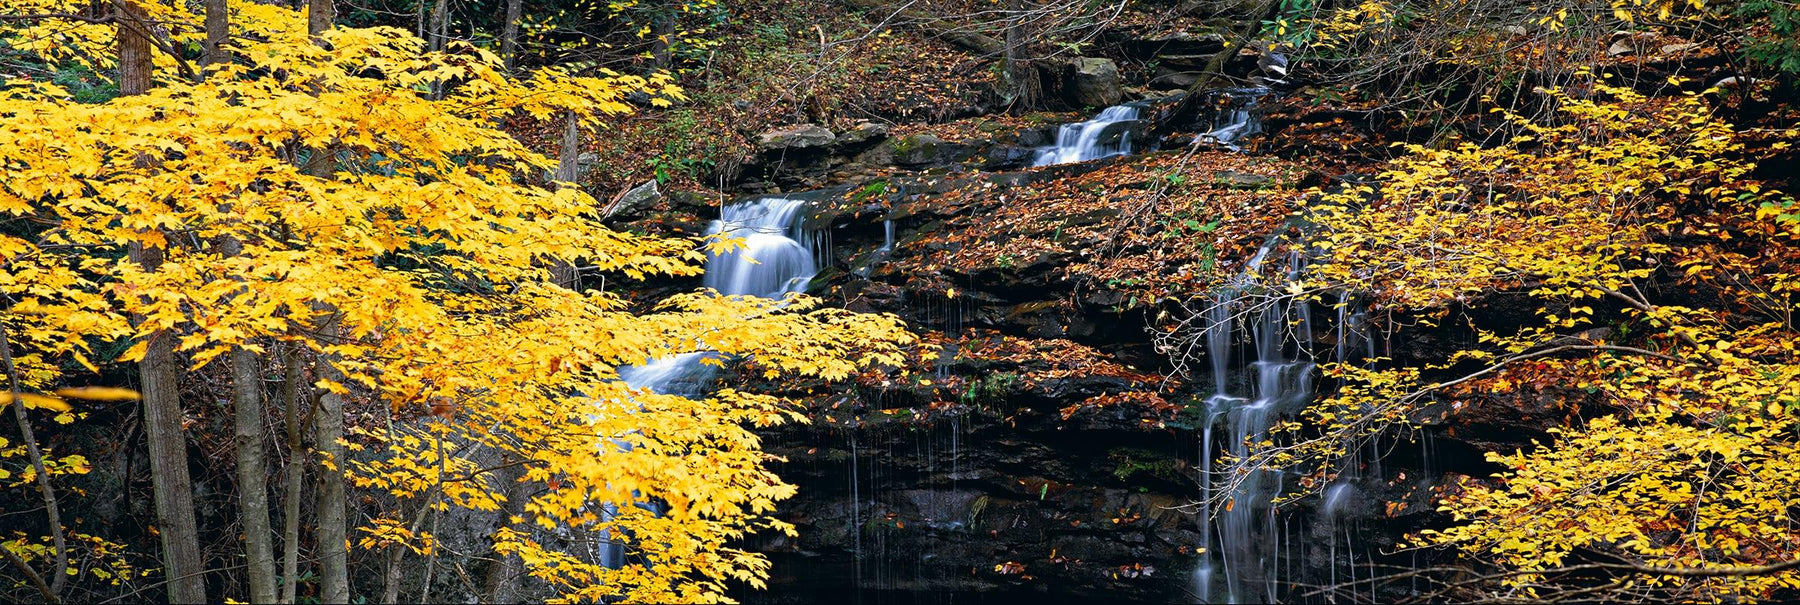 Yellow leaf trees in front of an Autumn leaf covered waterfall pouring into Glade Creek West Virginia